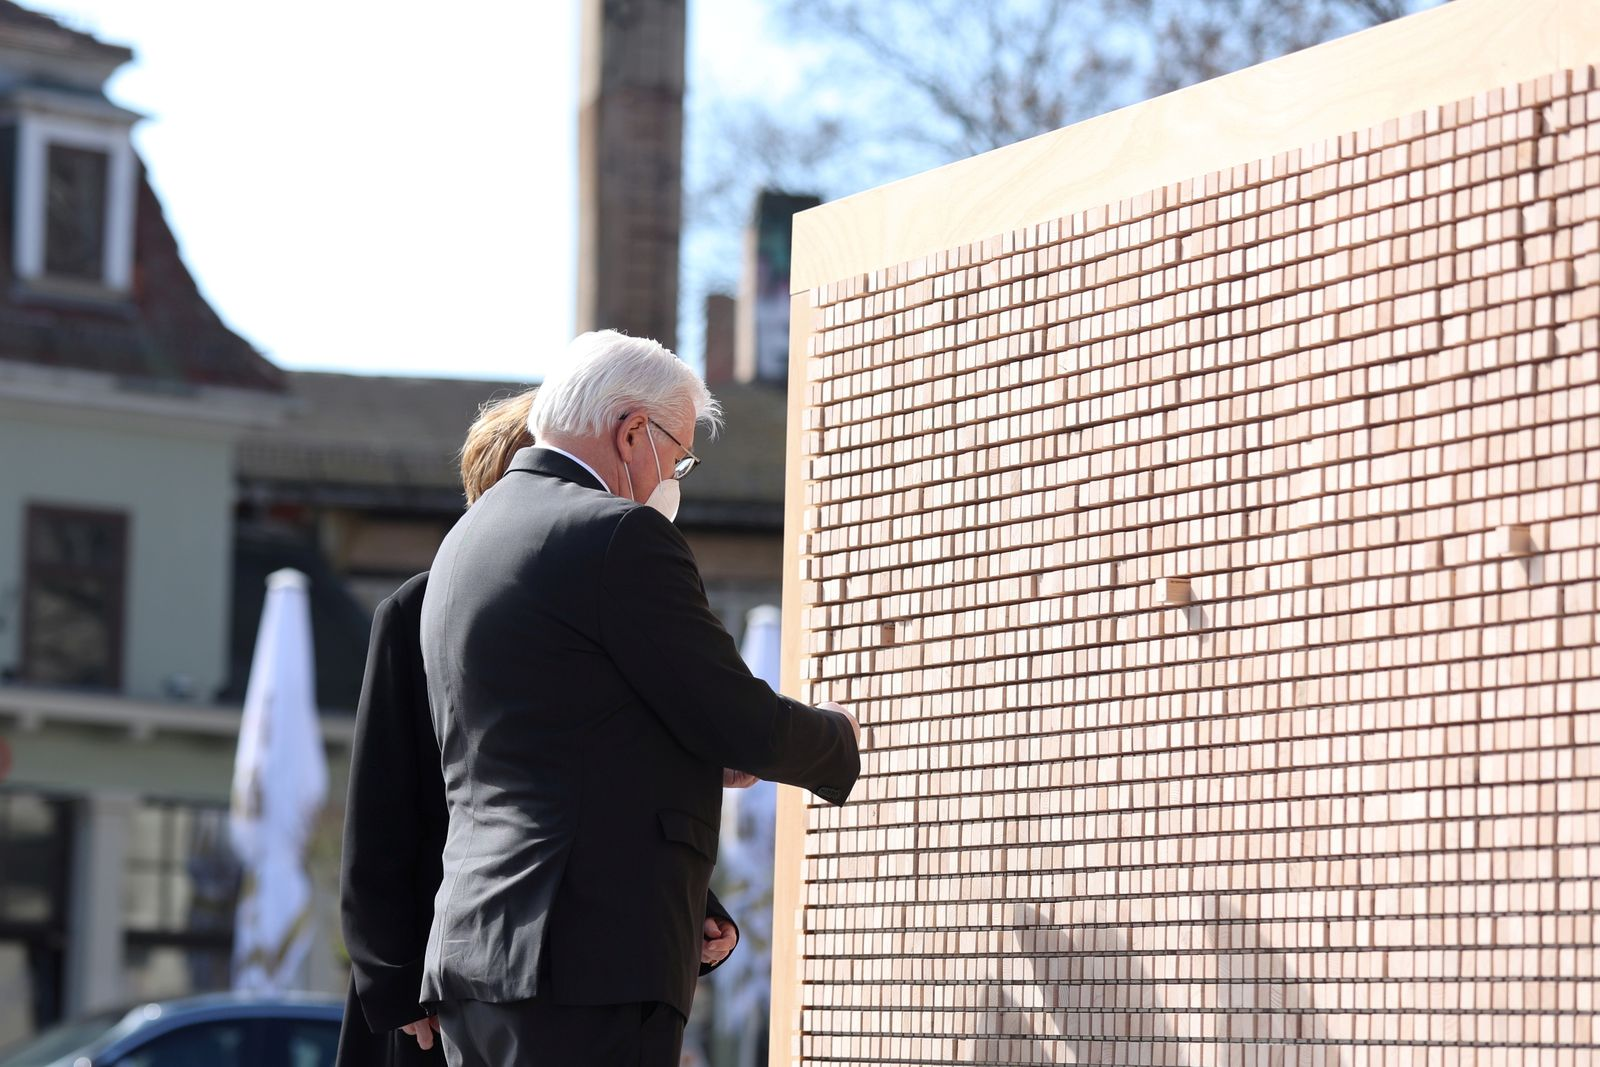 Steinmeier at 76th anniversary for the liberation of Buchenwald, in Weimar